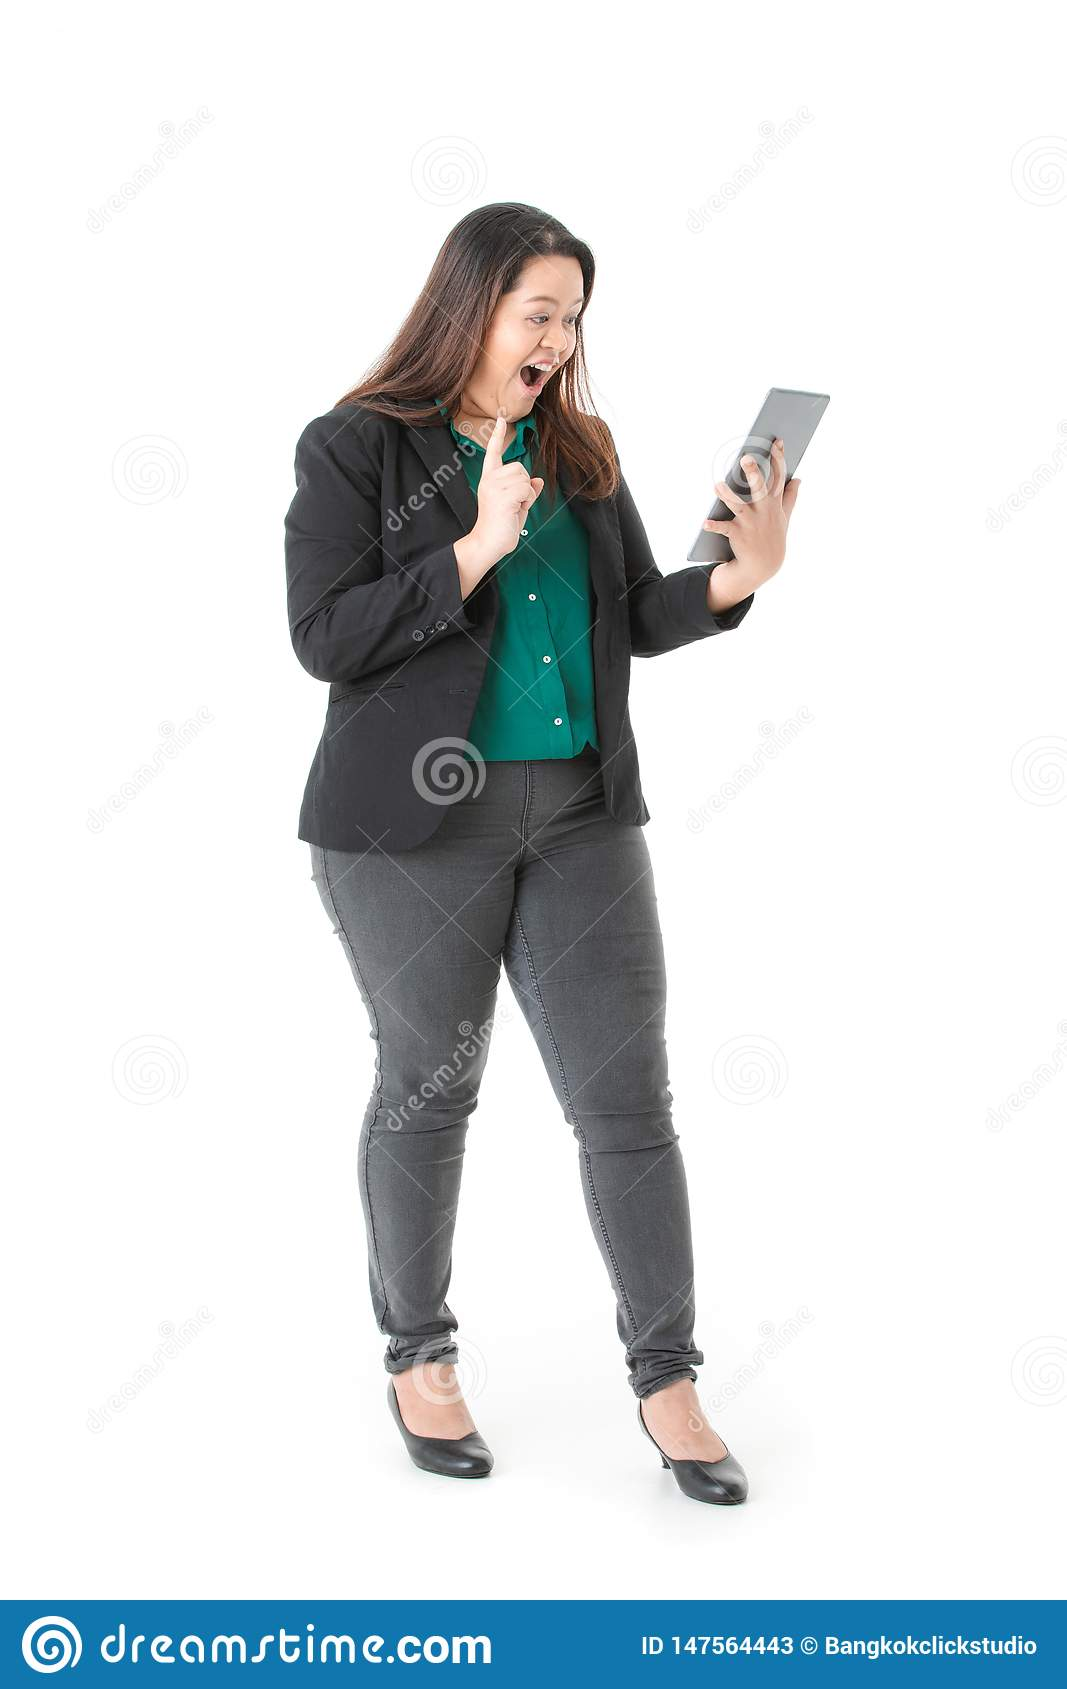 Plump lady in smart casual